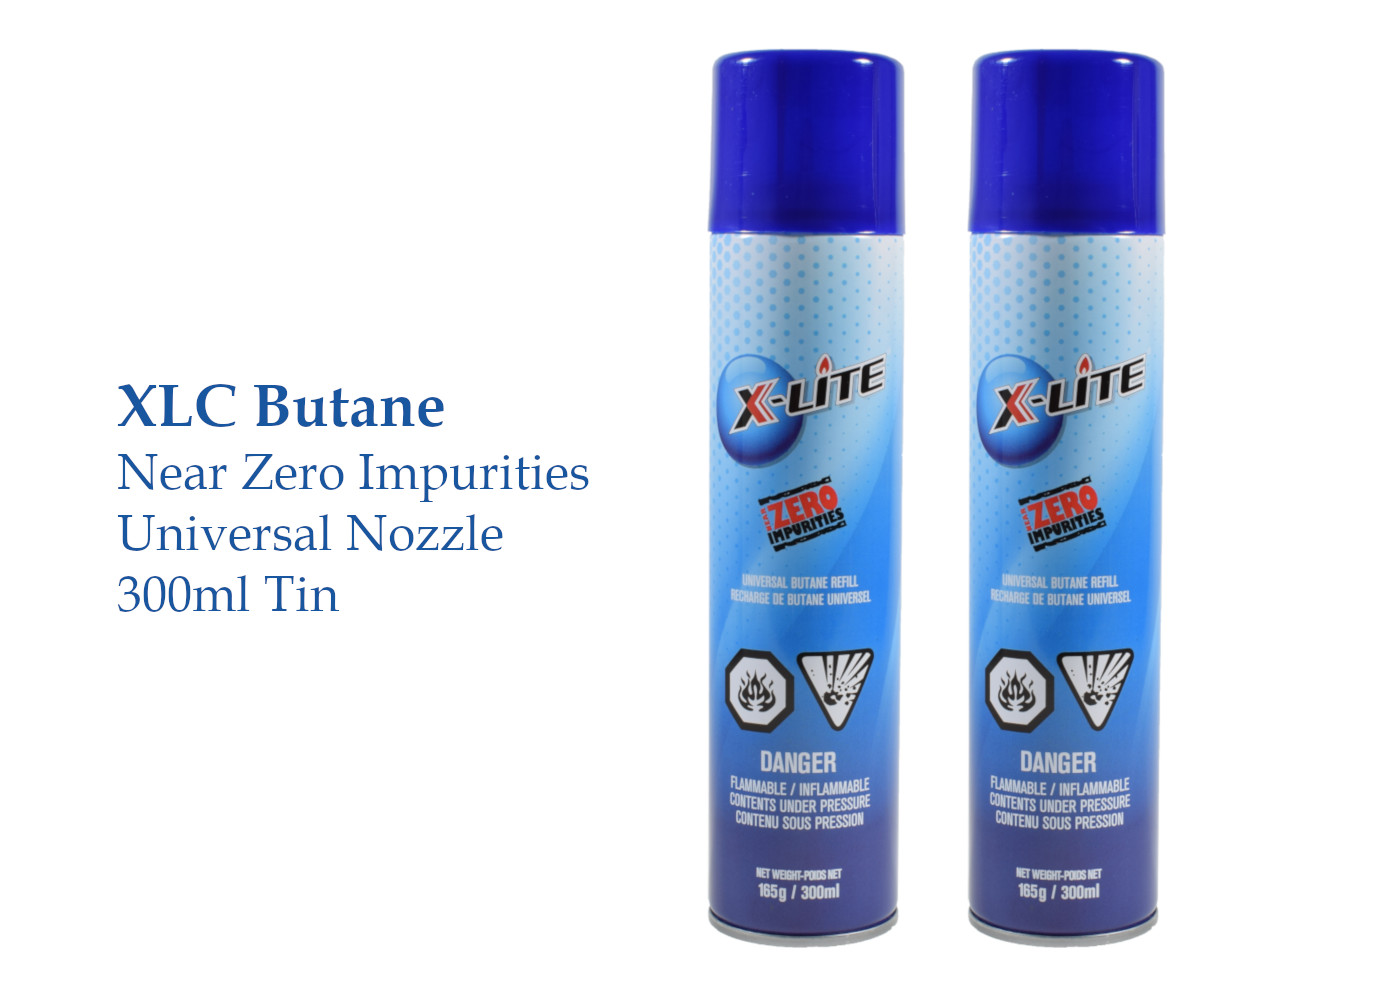 Universal Butane - Using premium ultra-clean butane in turbo lighters and torches maintains the quality of the lighter.Most fuels have contaminants introduced from Manufacturing. By removing lubricants from the welding process and laminating key components of the valve assembly, X-Lite has delivered a premium, near ZERO IMPURITIES butane that keeps your flame burning clean.